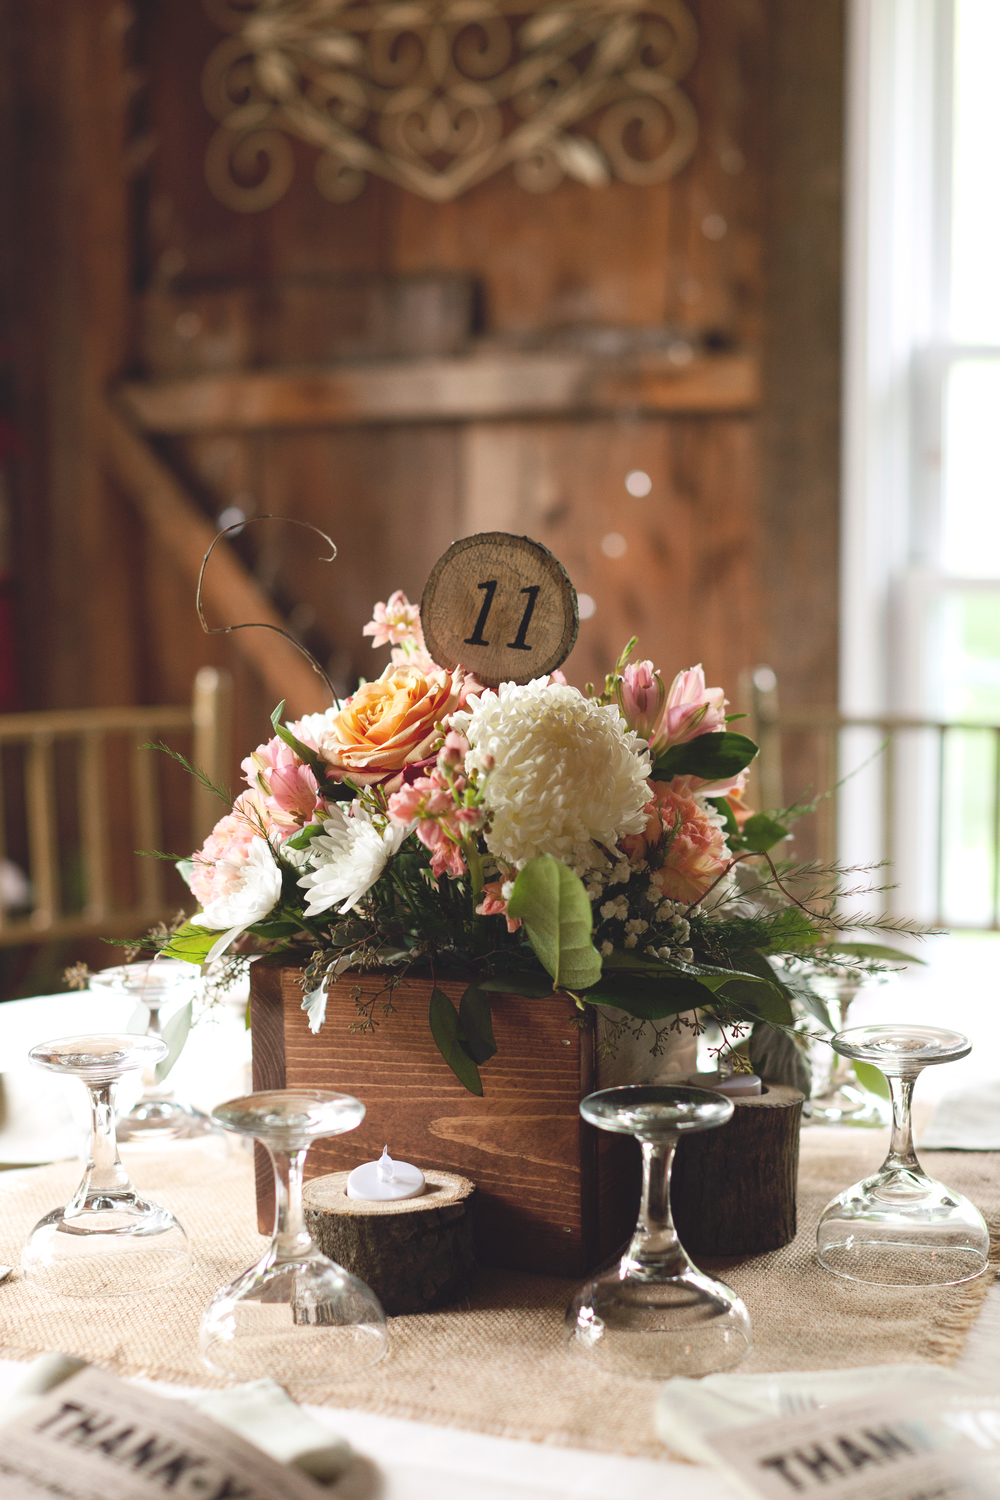 Soft Pastel and White Centerpiece (Photo Credit: Sonlight Imaging)